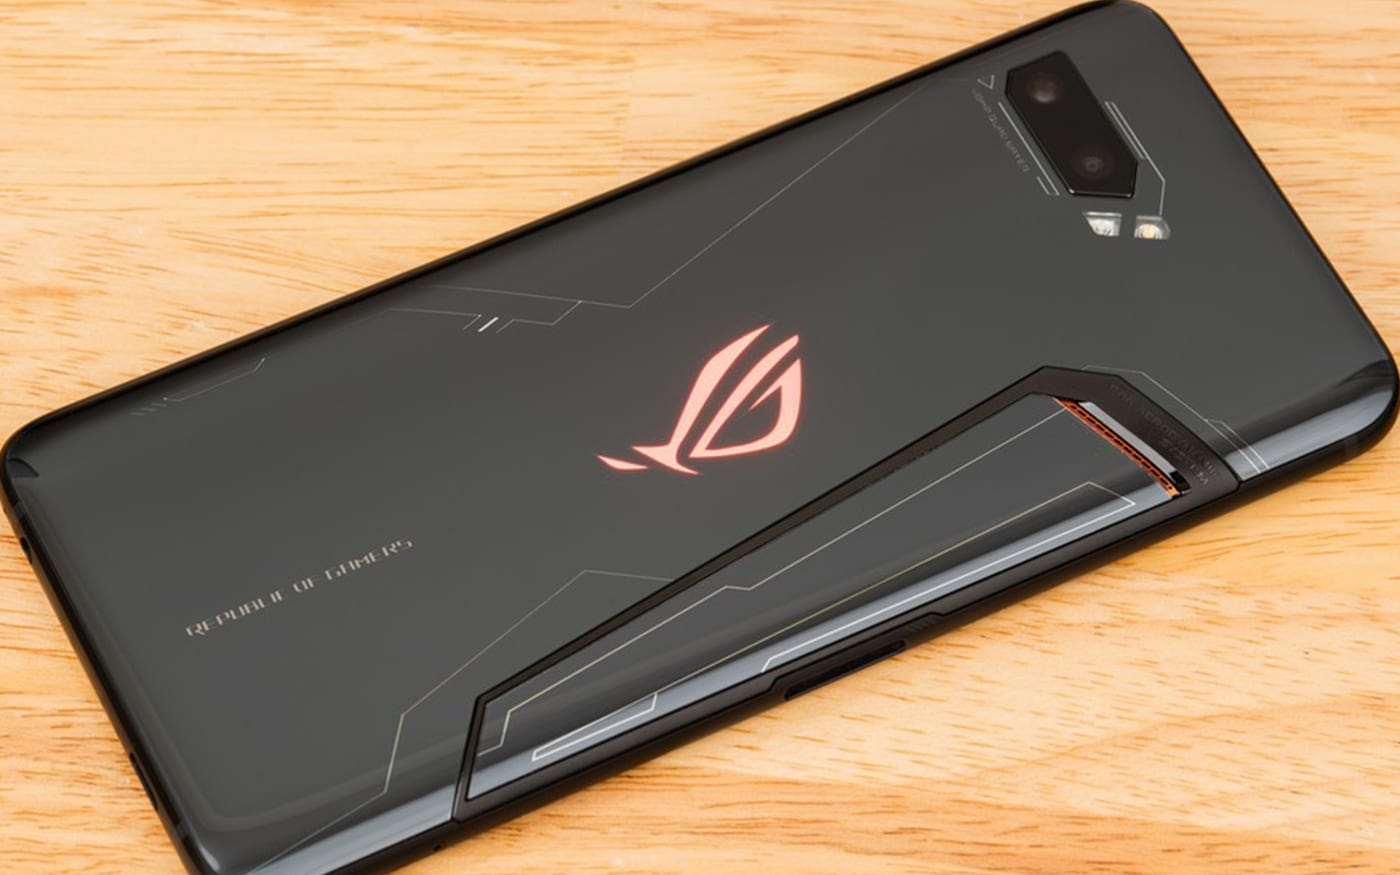 Beta do Android 10 chega ao Asus ROG Phone 2